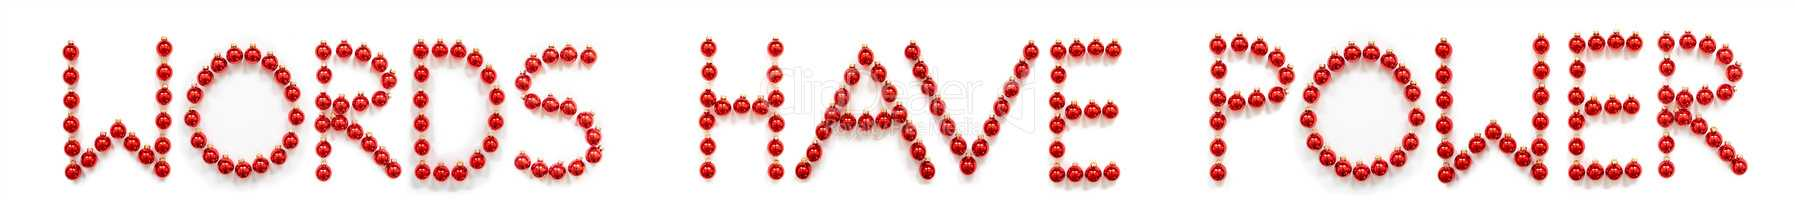 Red Christmas Ball Ornament Building Word Words Have Power